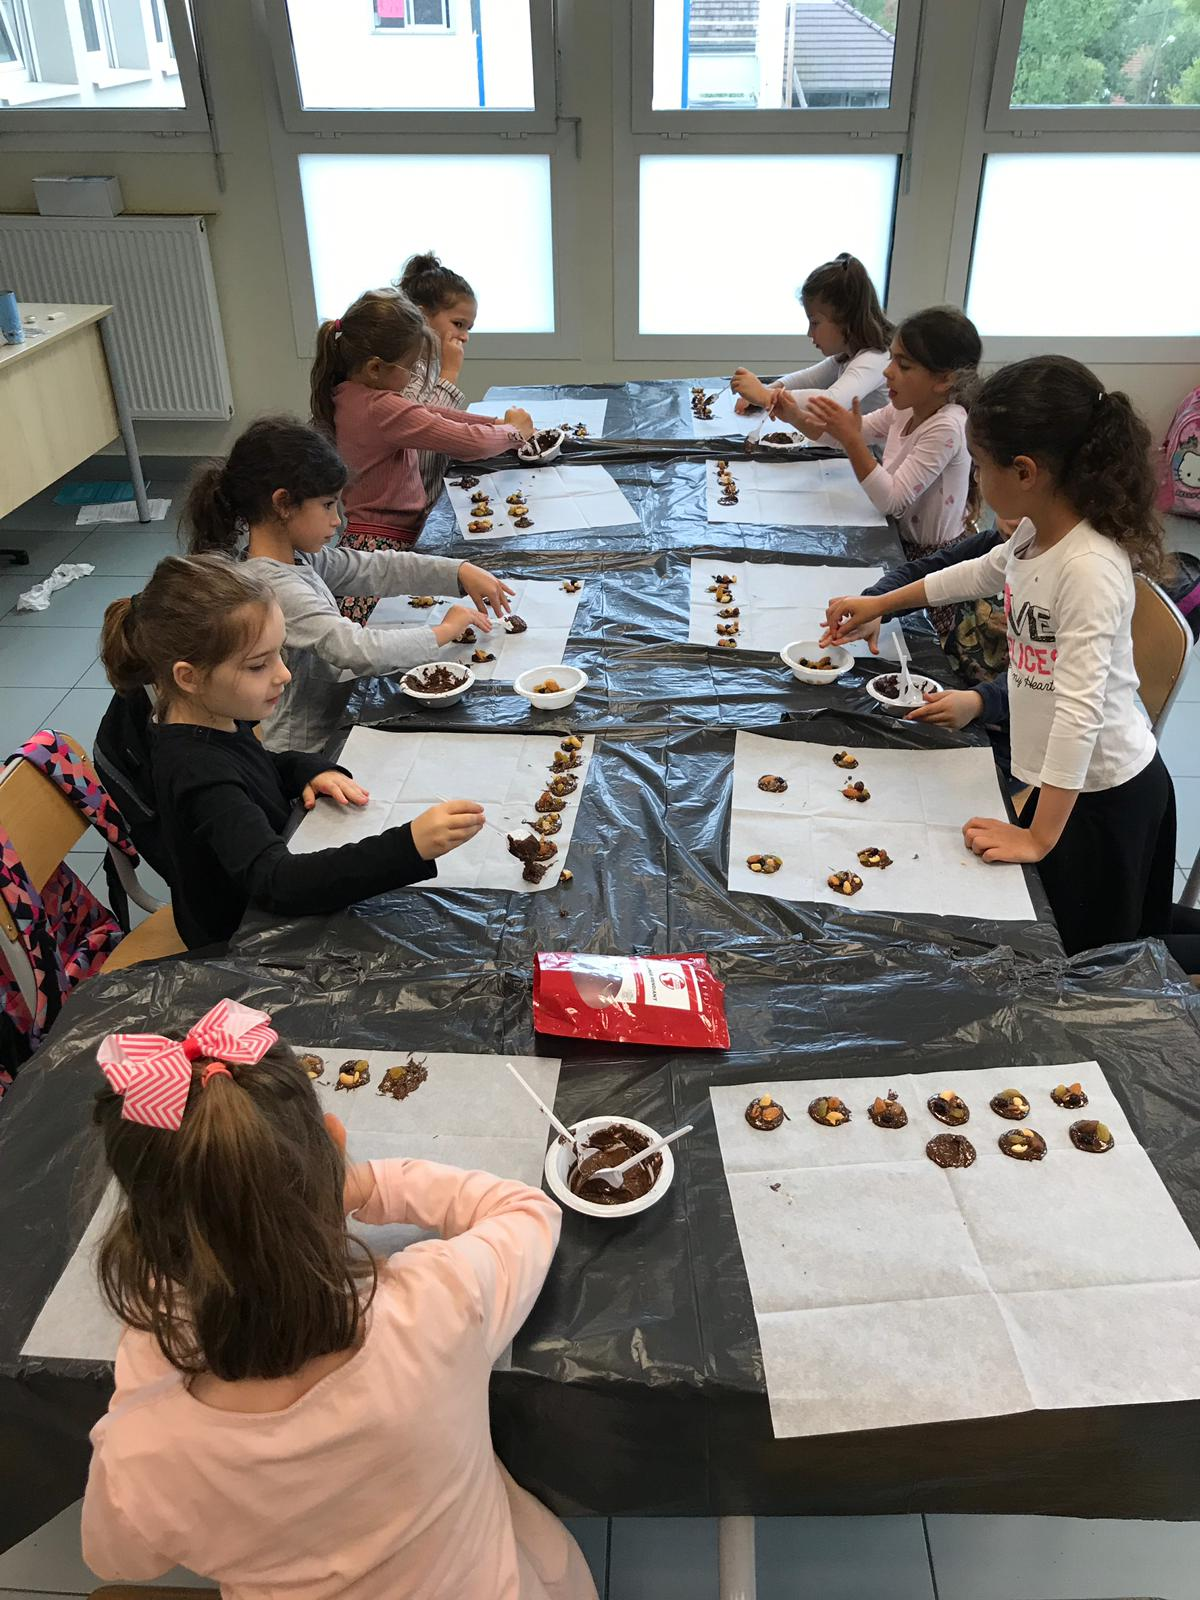 WhatsApp Image 2019-09-27 at 15.27.16